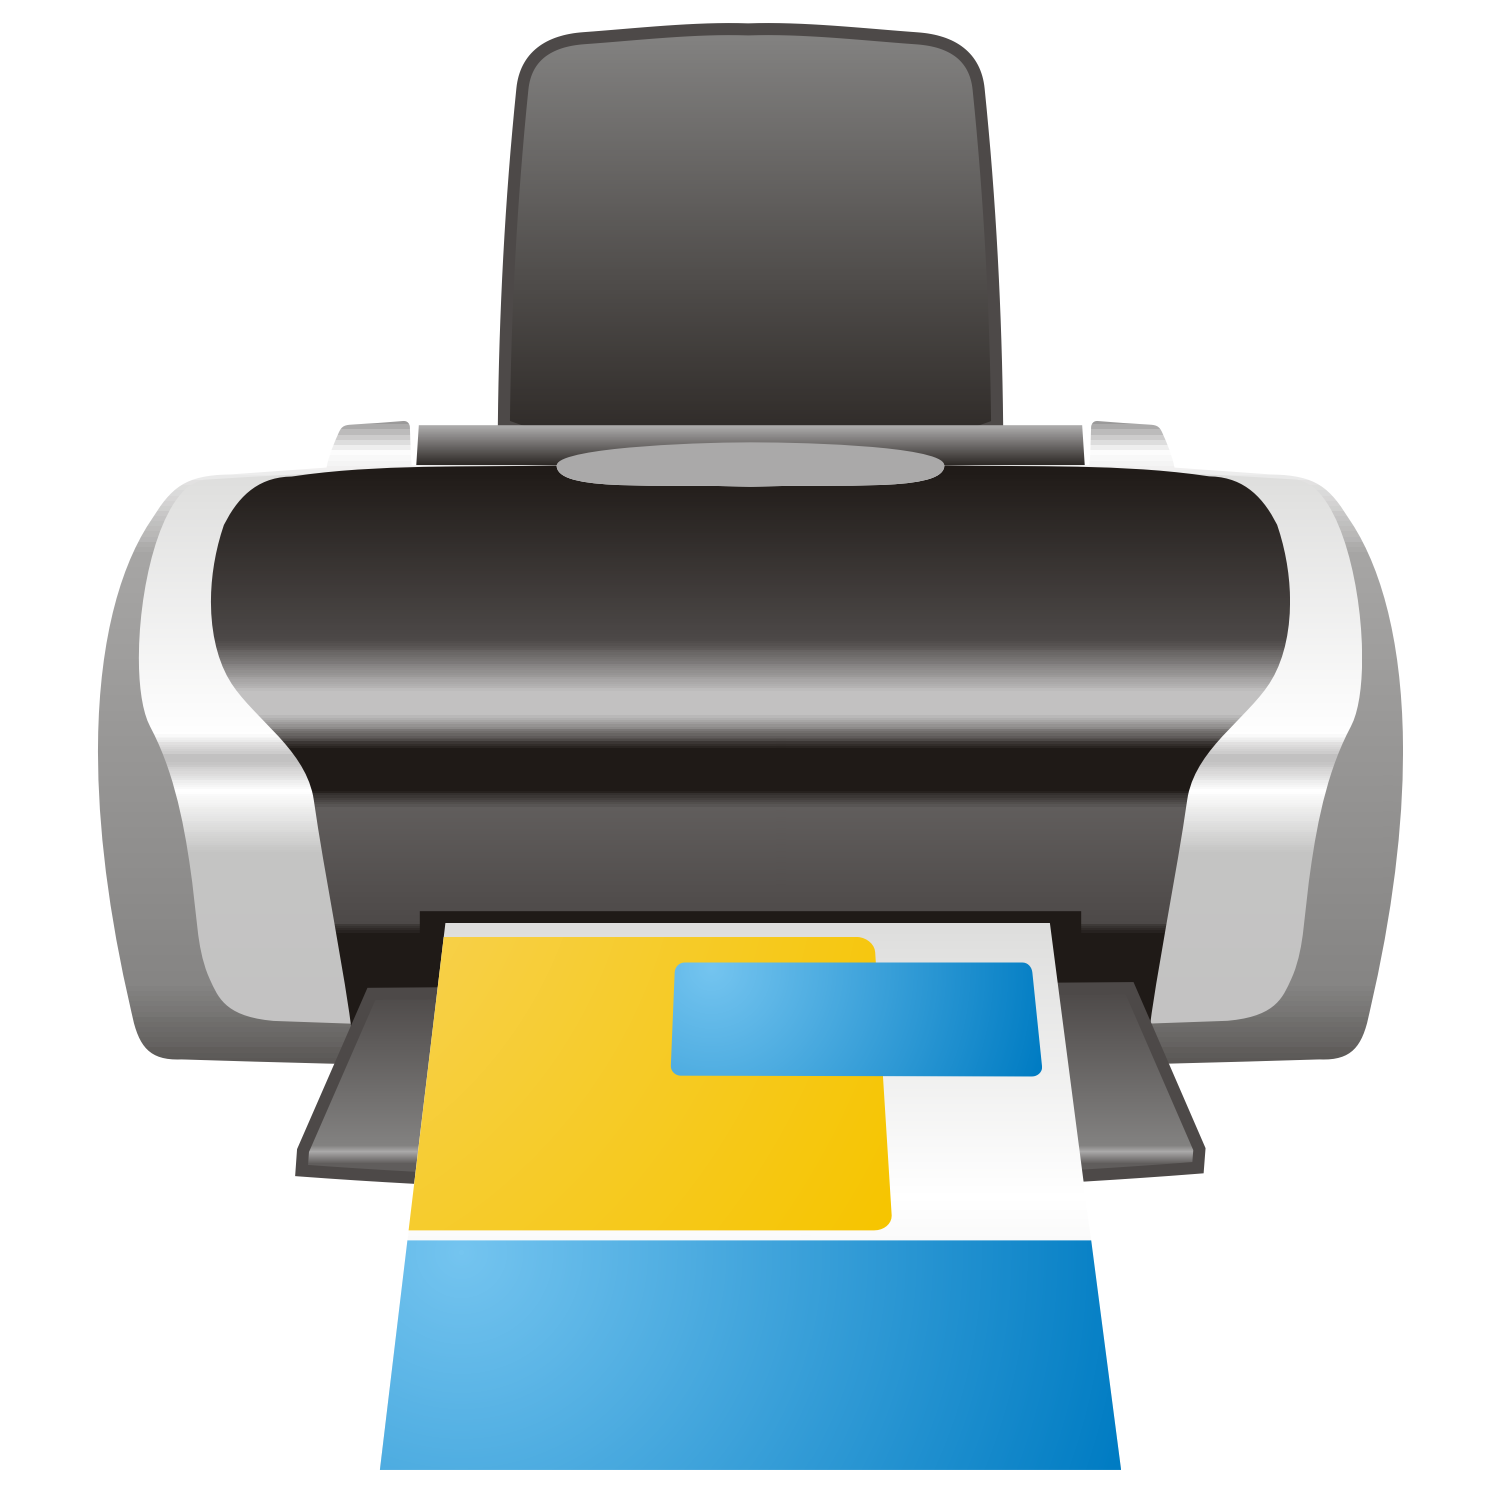 InkJet Printer vector